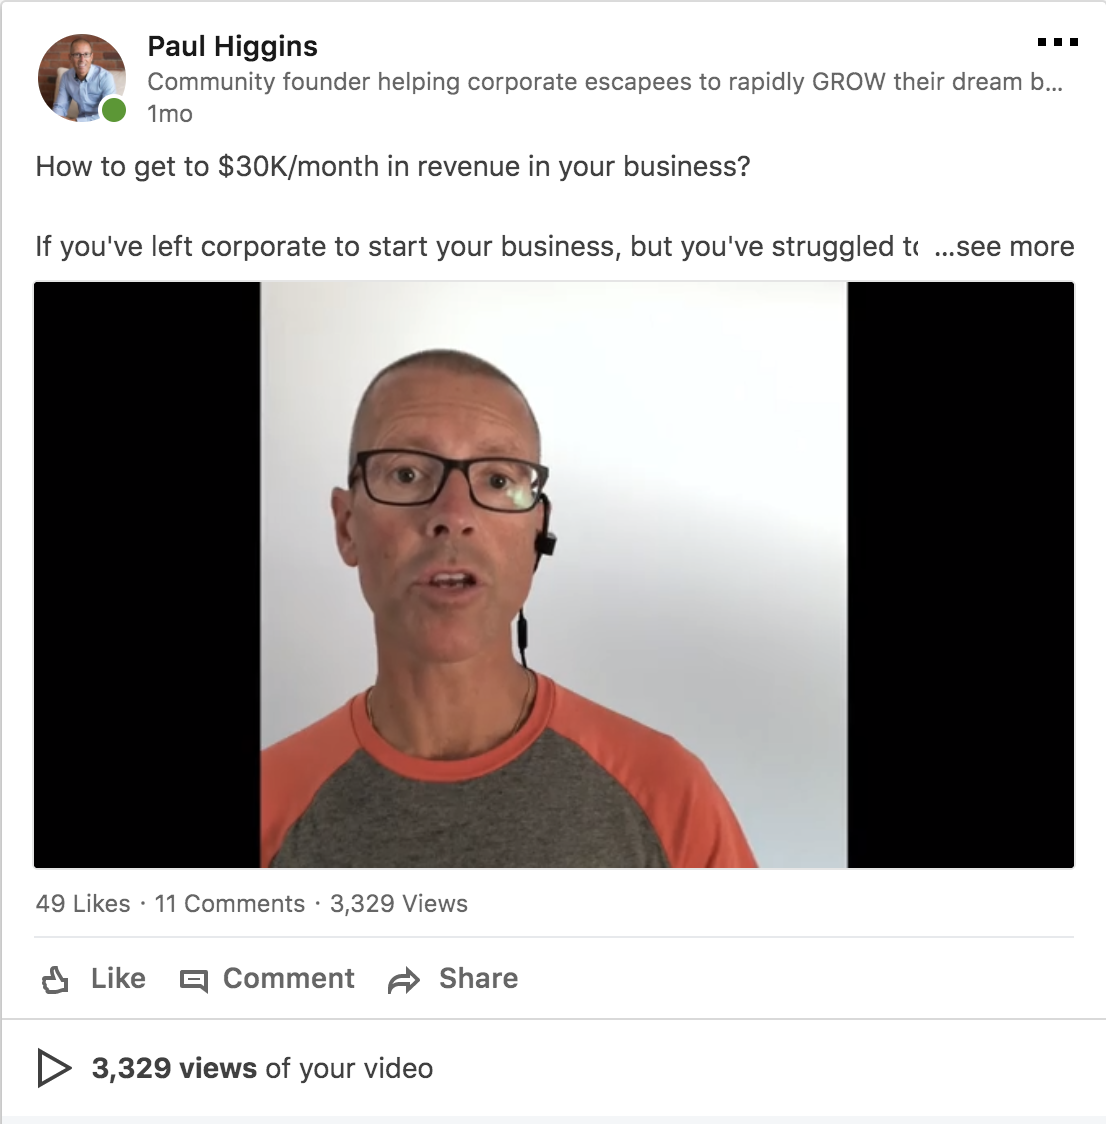 Paul Higgins Linkedin video screenshot